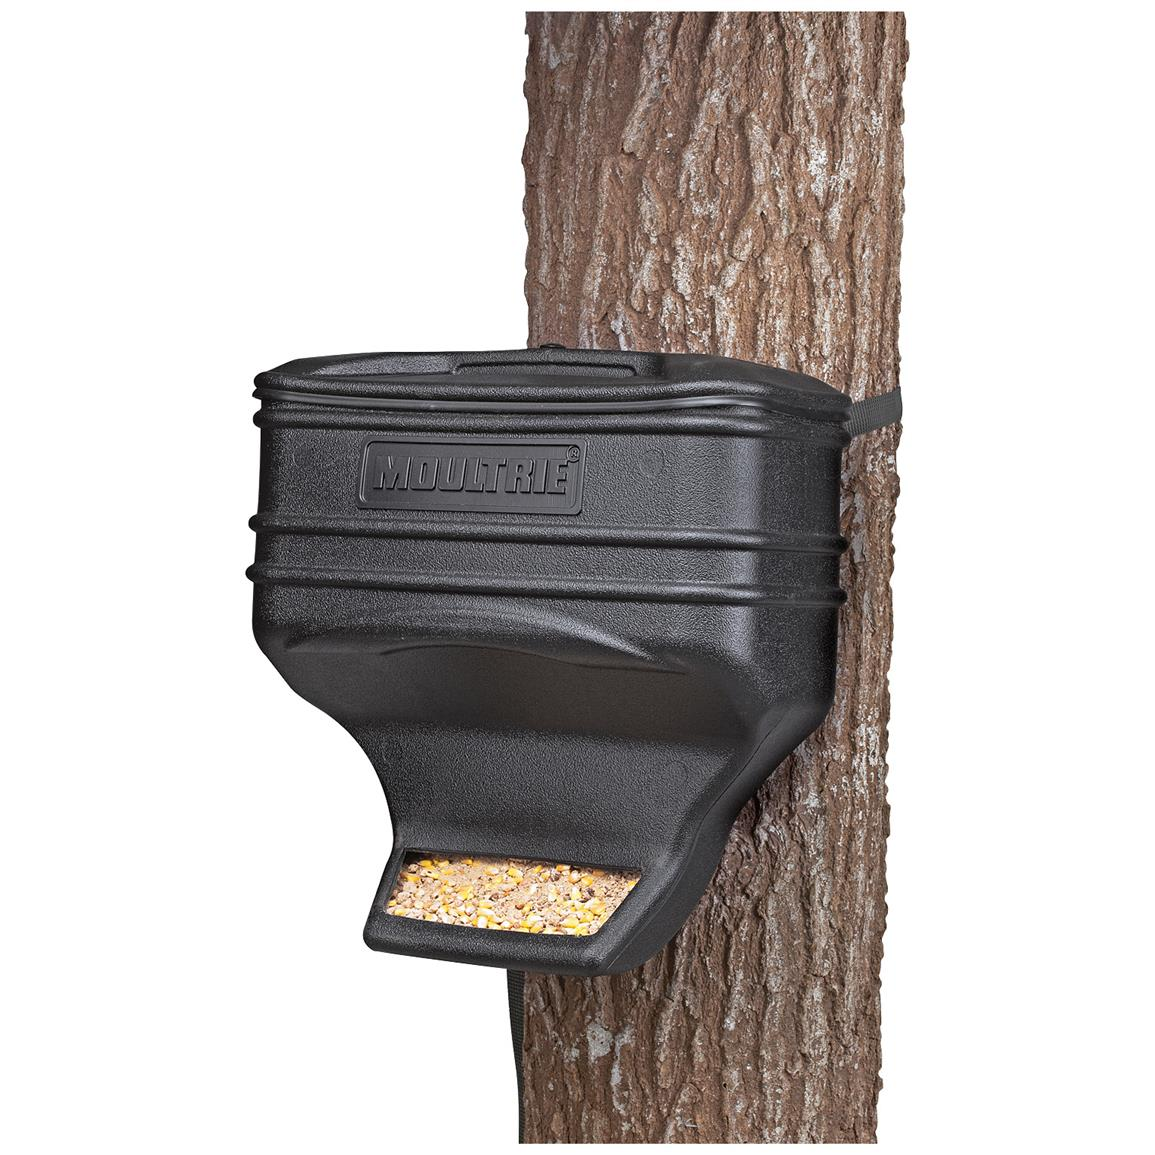 Moultrie Gravity Feeder